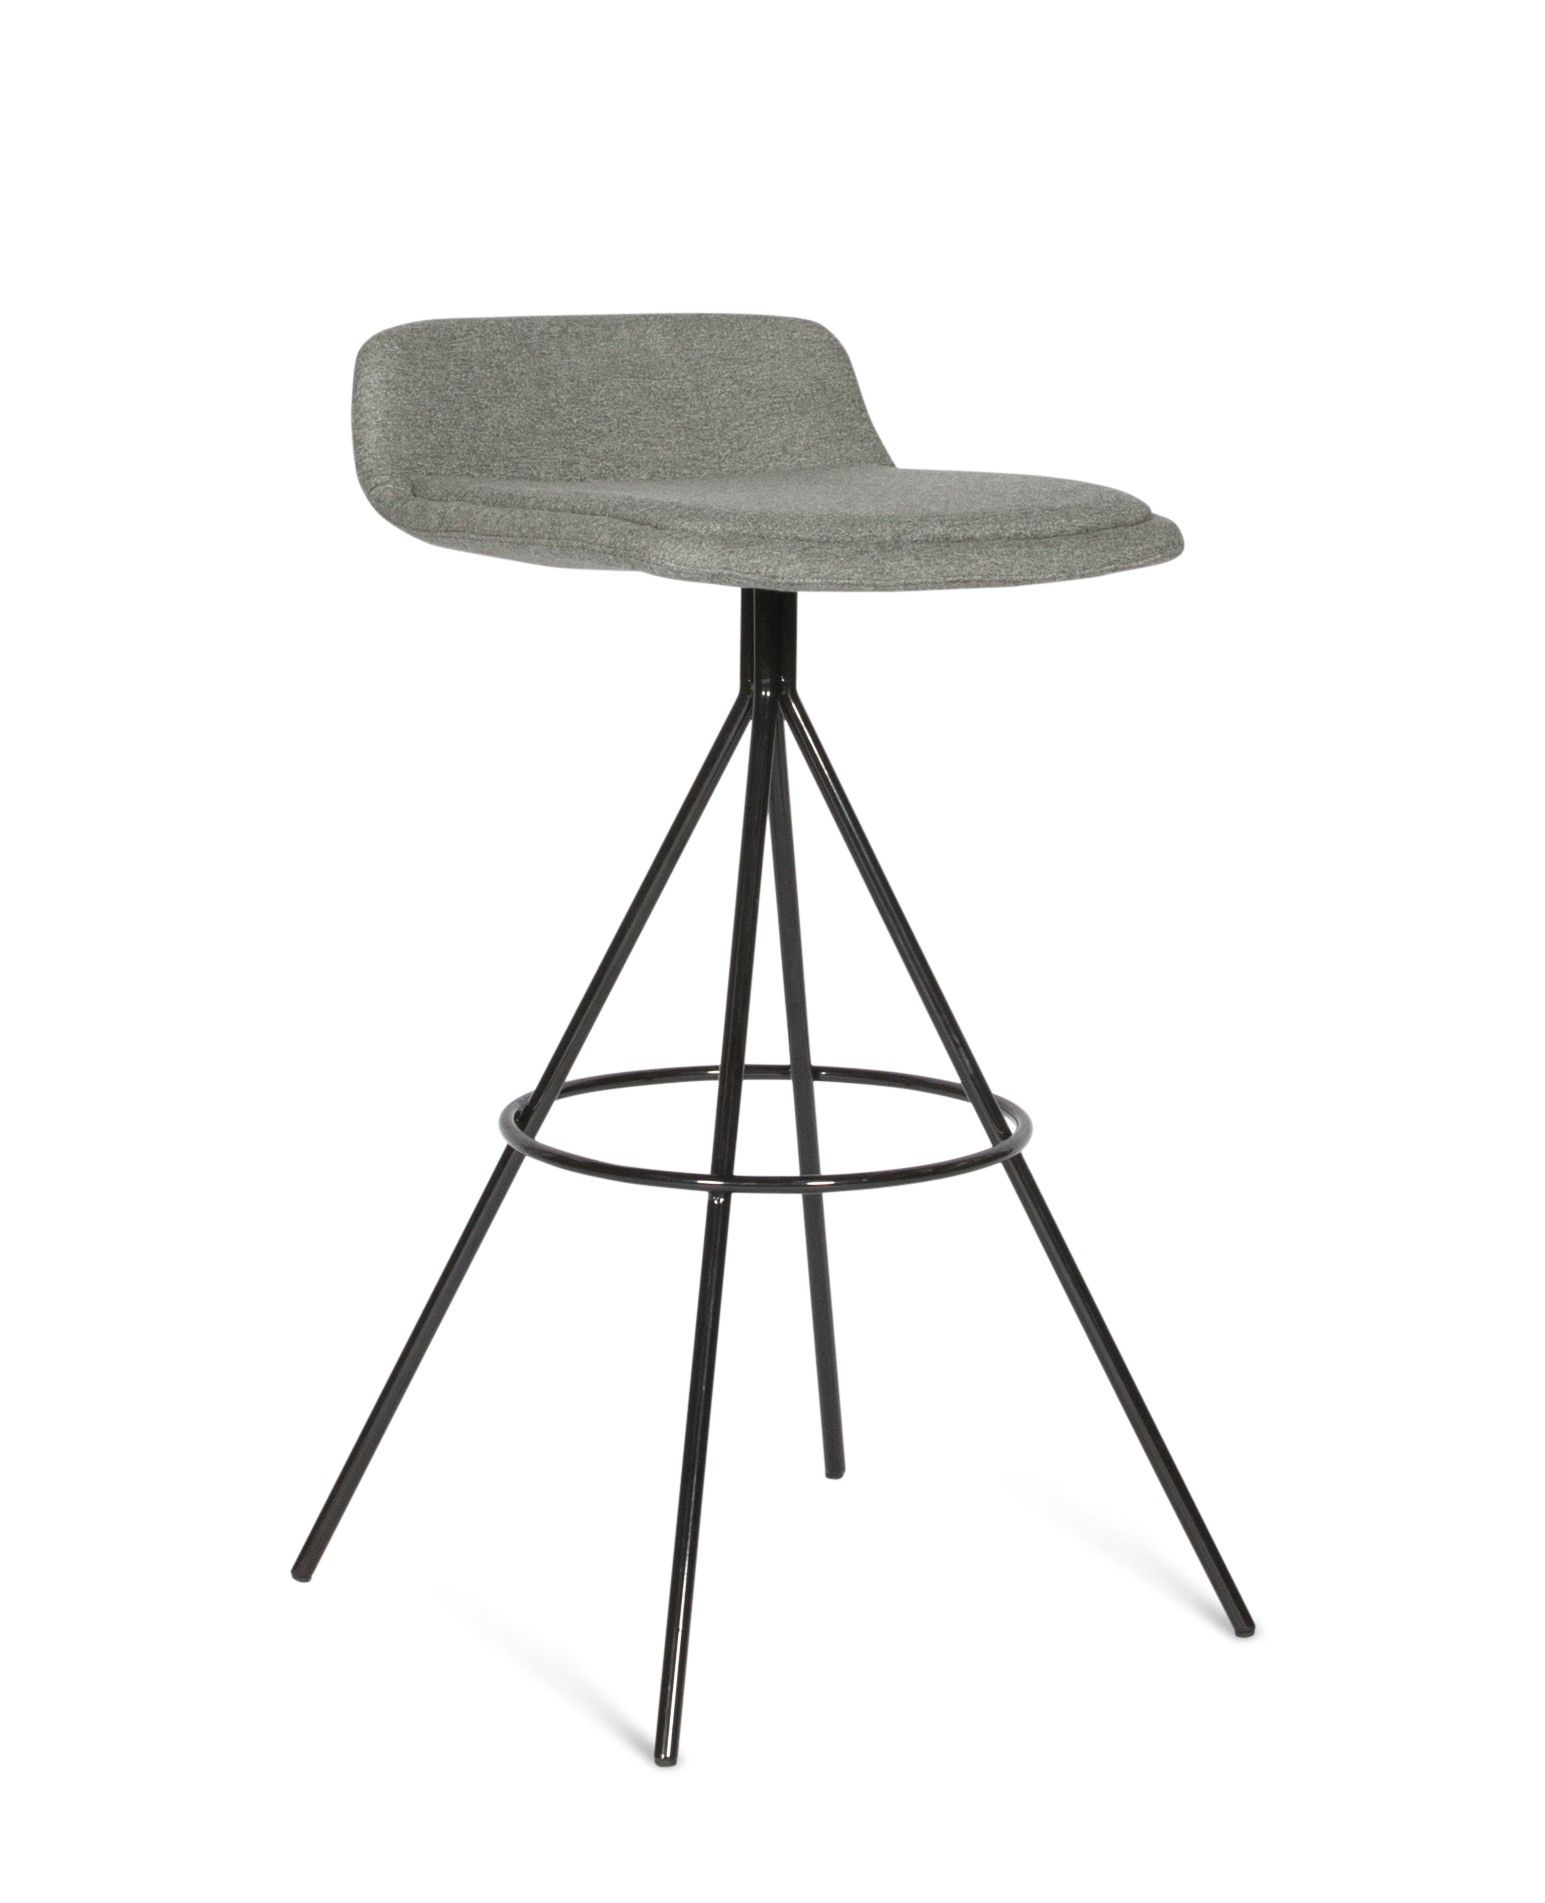 Kiara bar stool in black powder coat